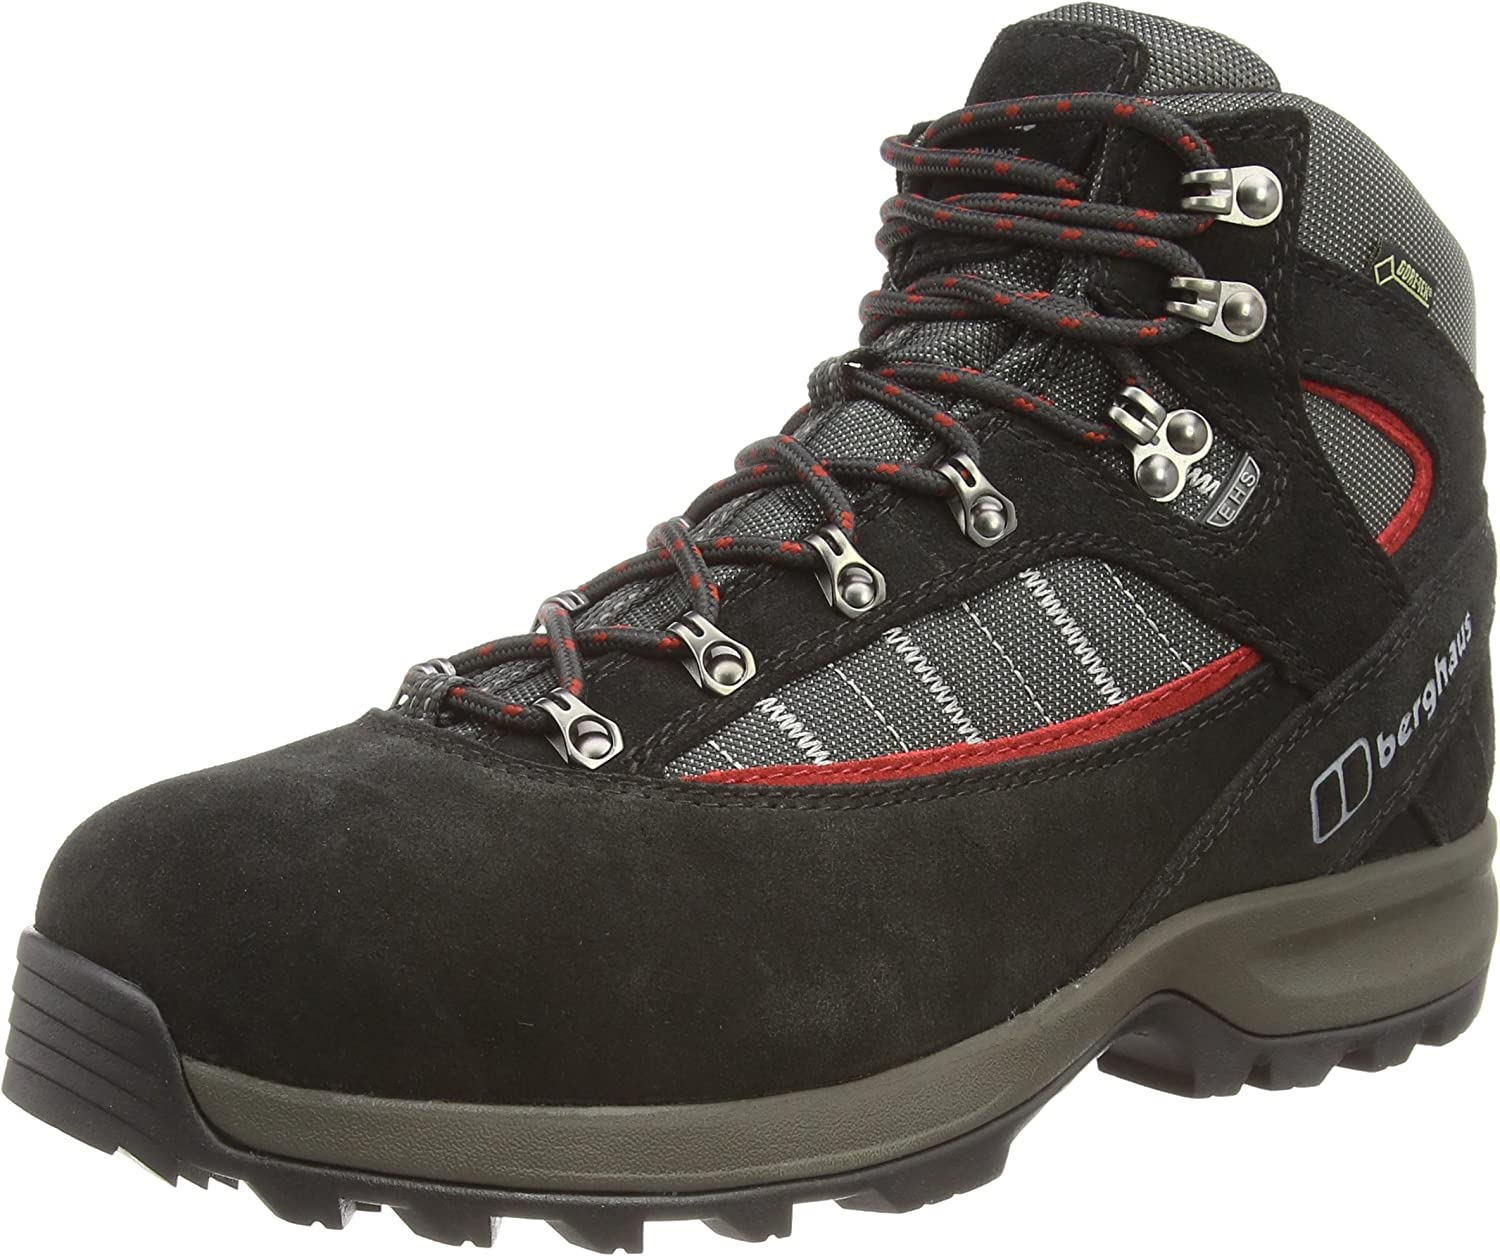 Berghaus Men's Explorer Trek Walking Boot, Black, US8.5